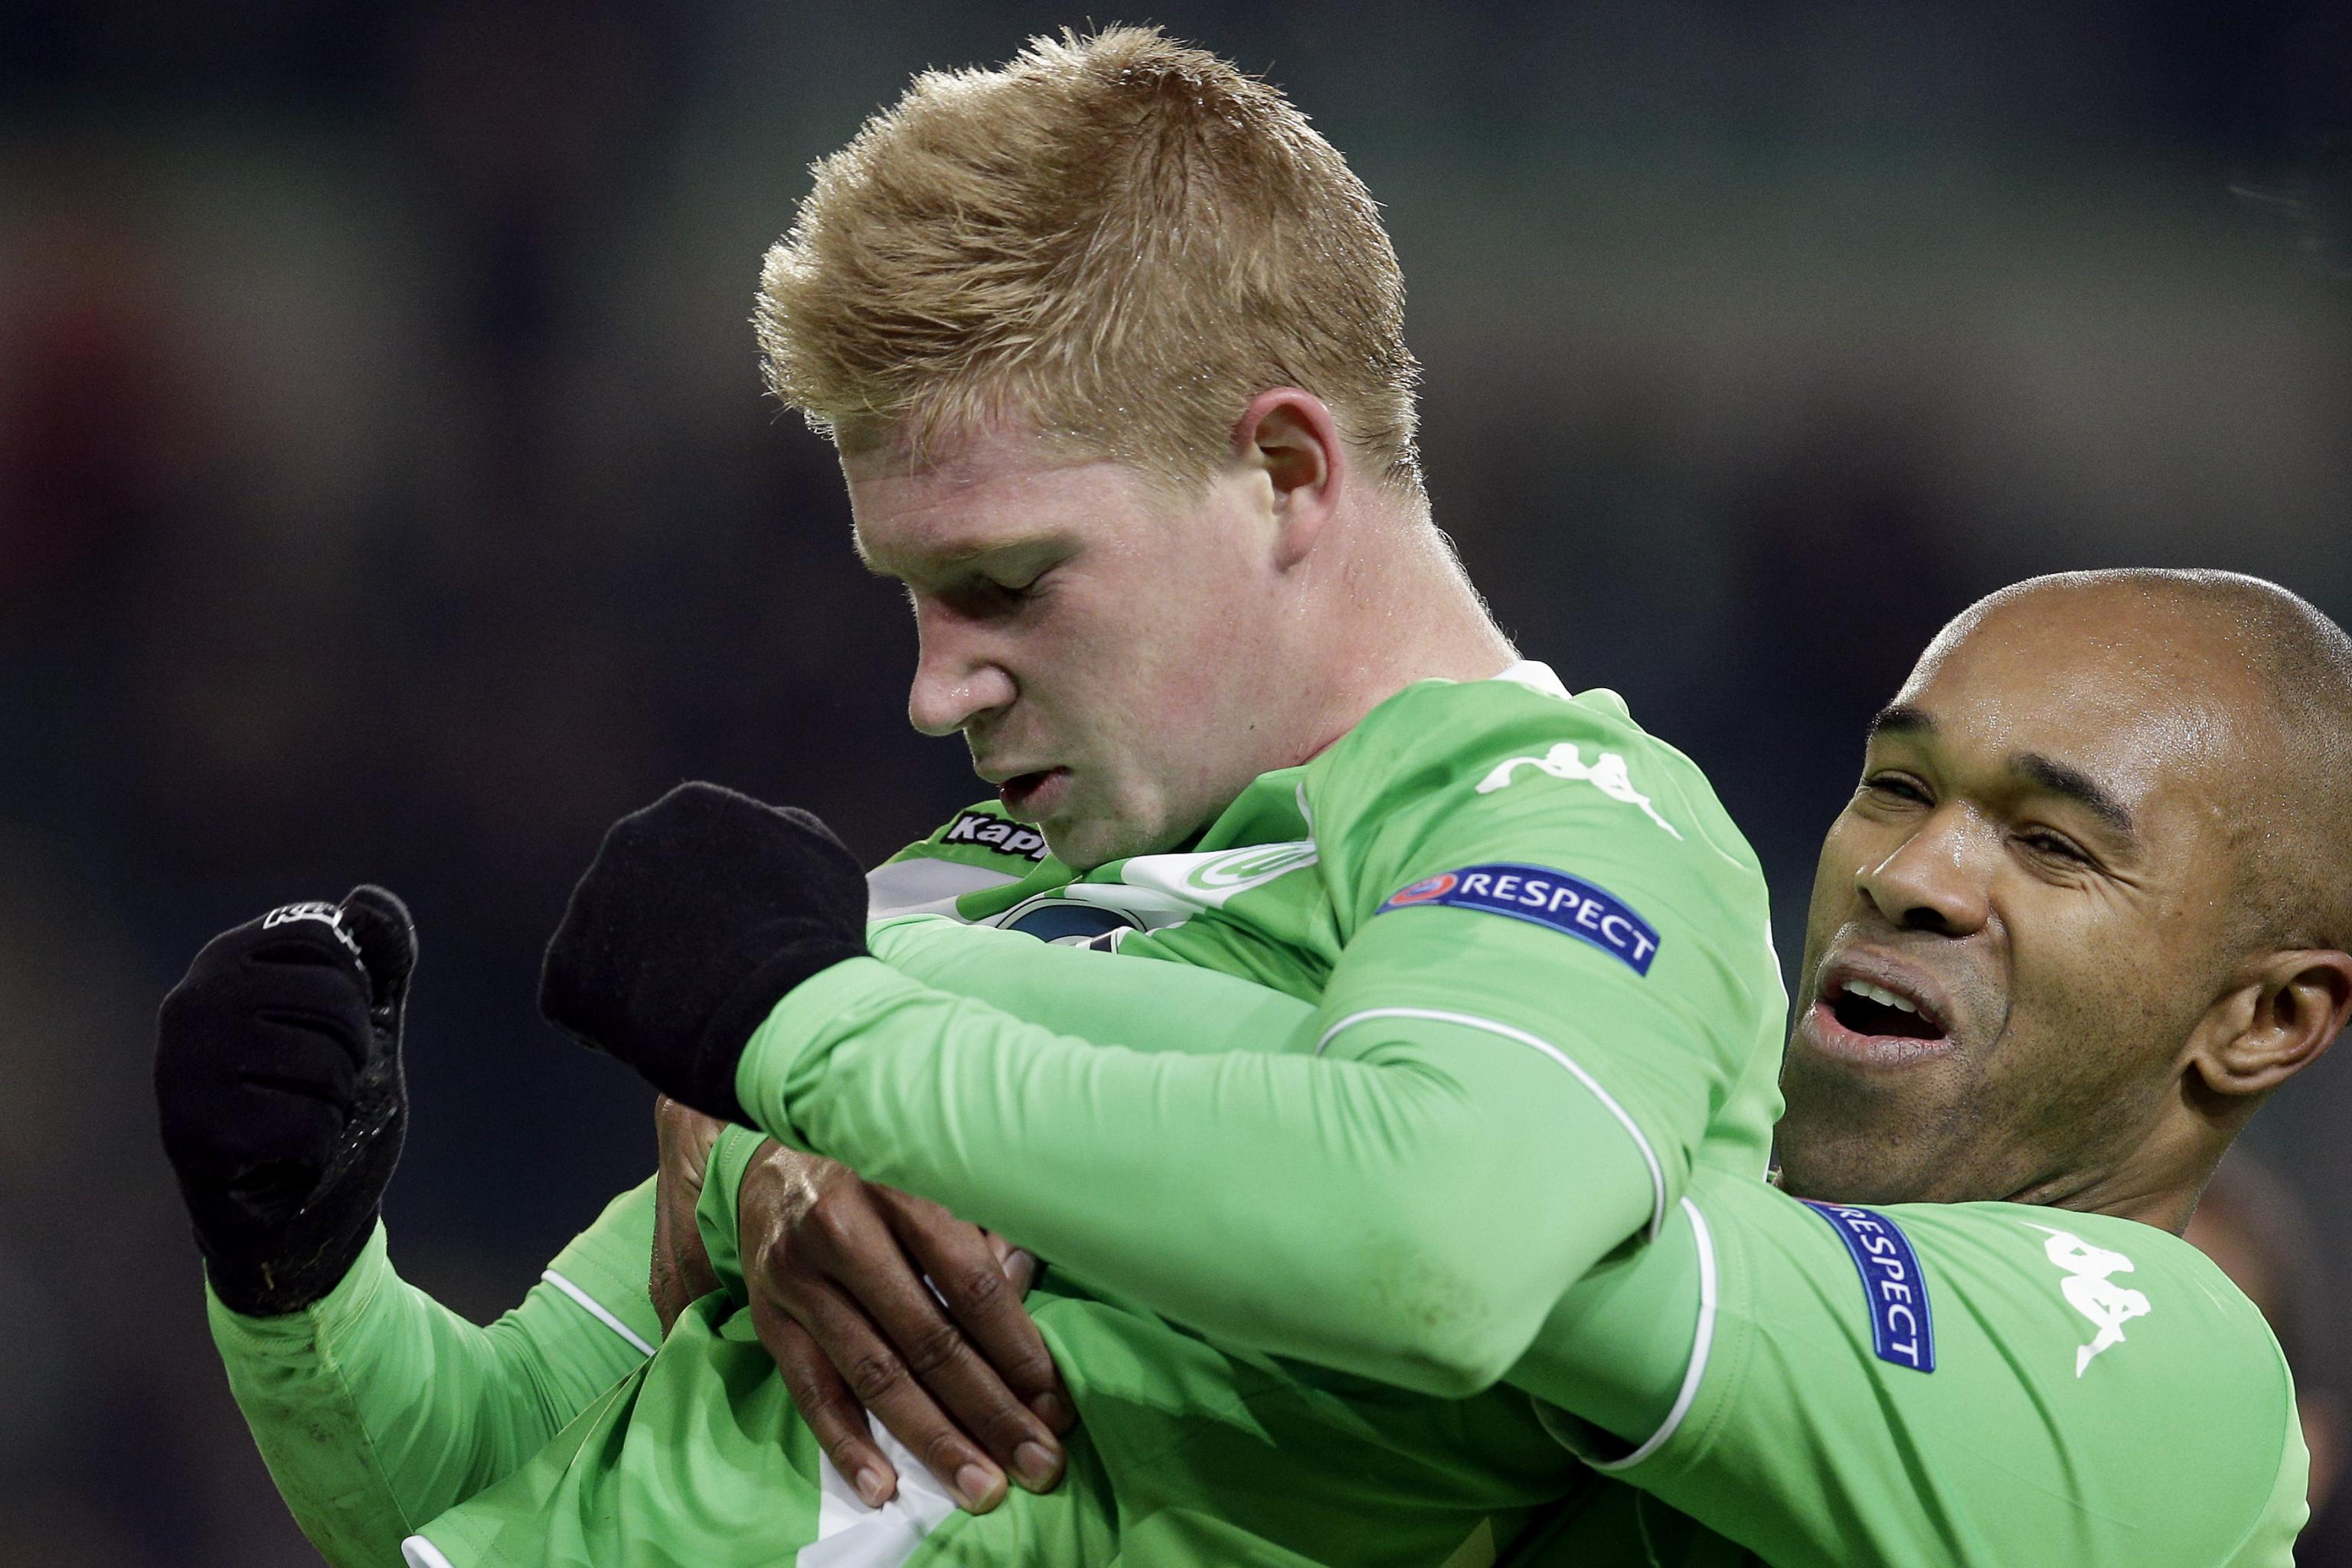 Why Chelsea Should Not Consider Re-Signing Kevin De Bruyne ...